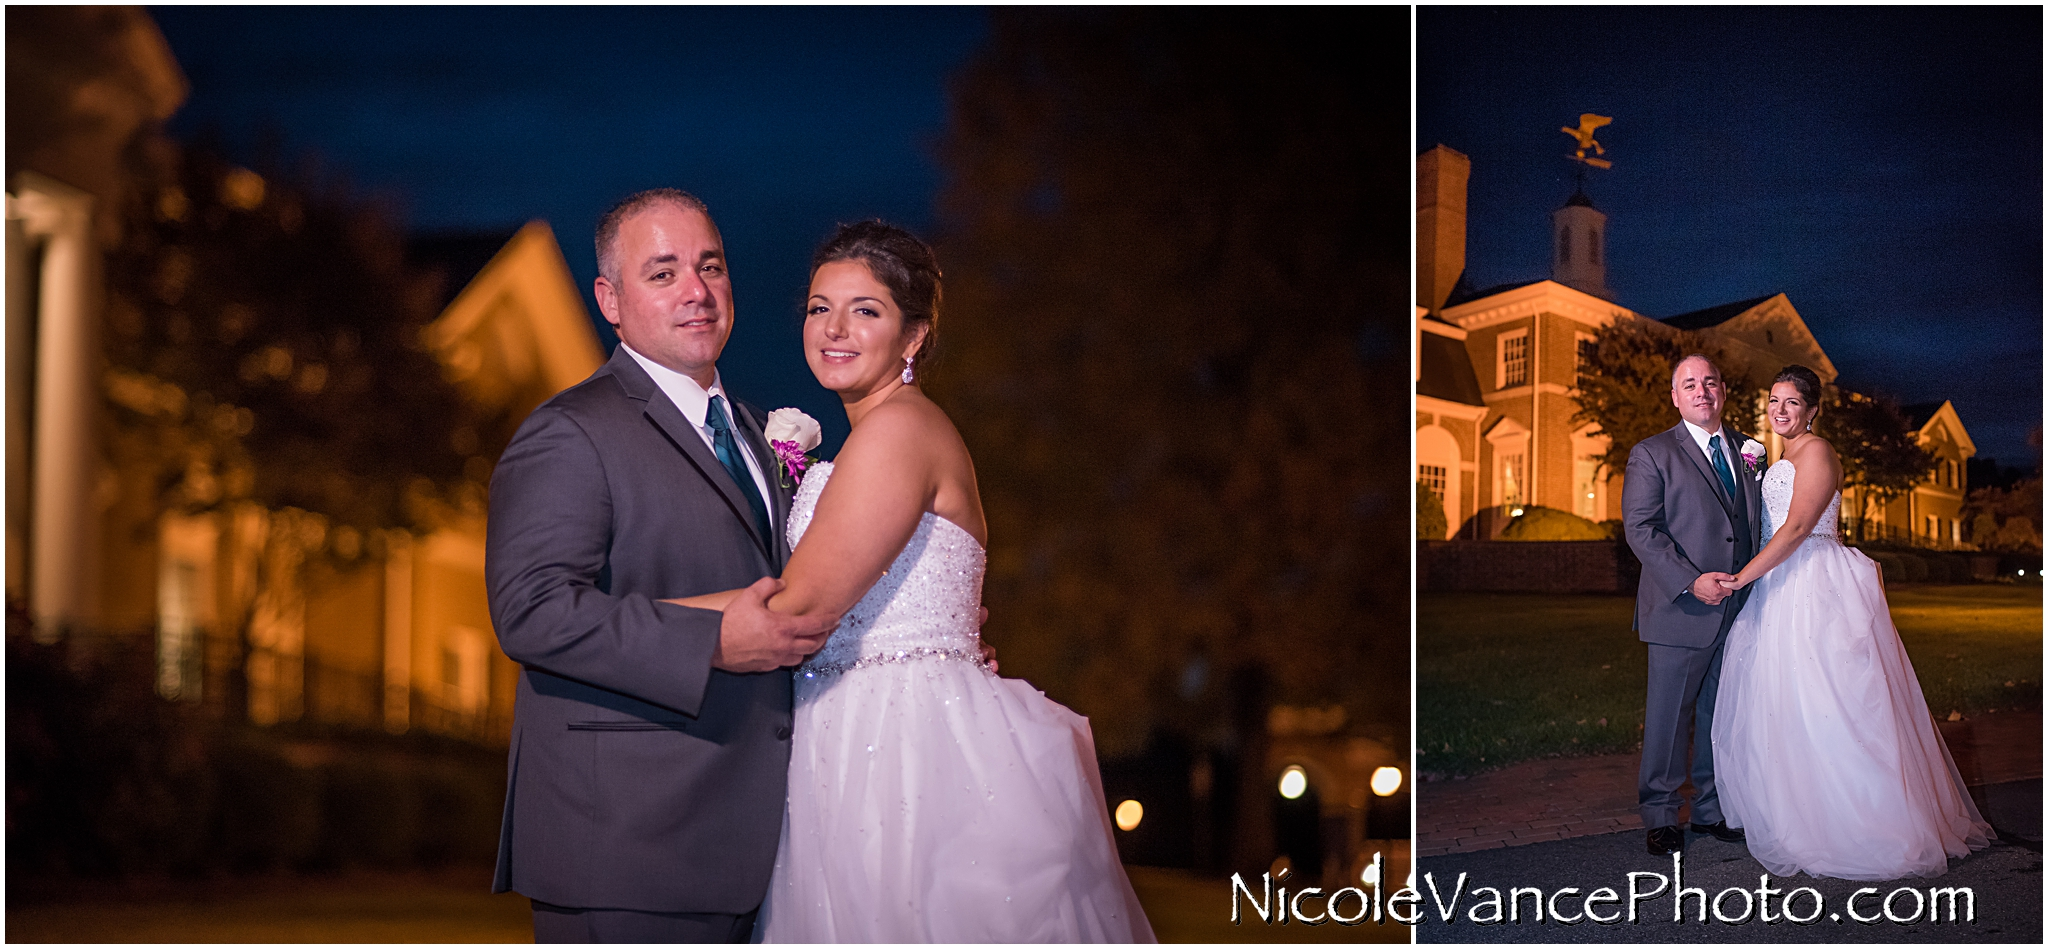 Night portraits in front of Virginia Crossings.